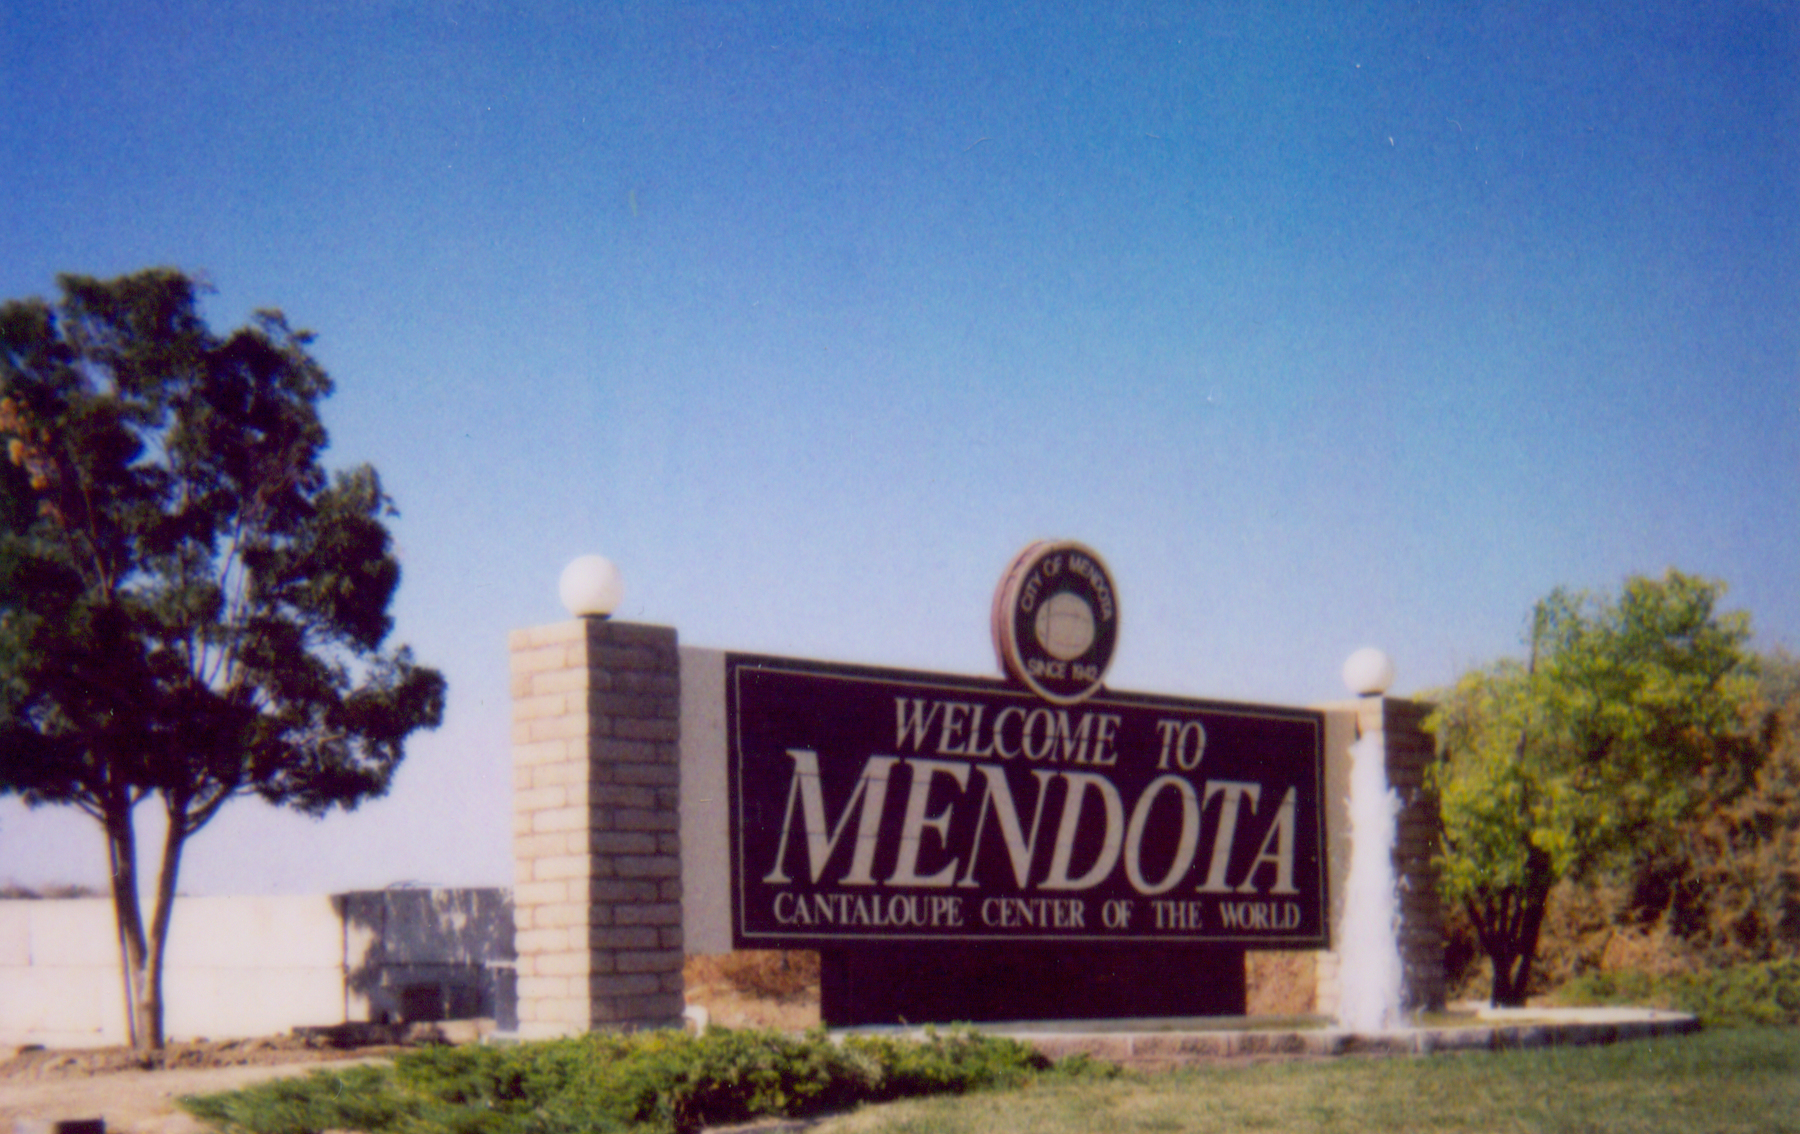 Affordable and anonymous STD testing for Mendota